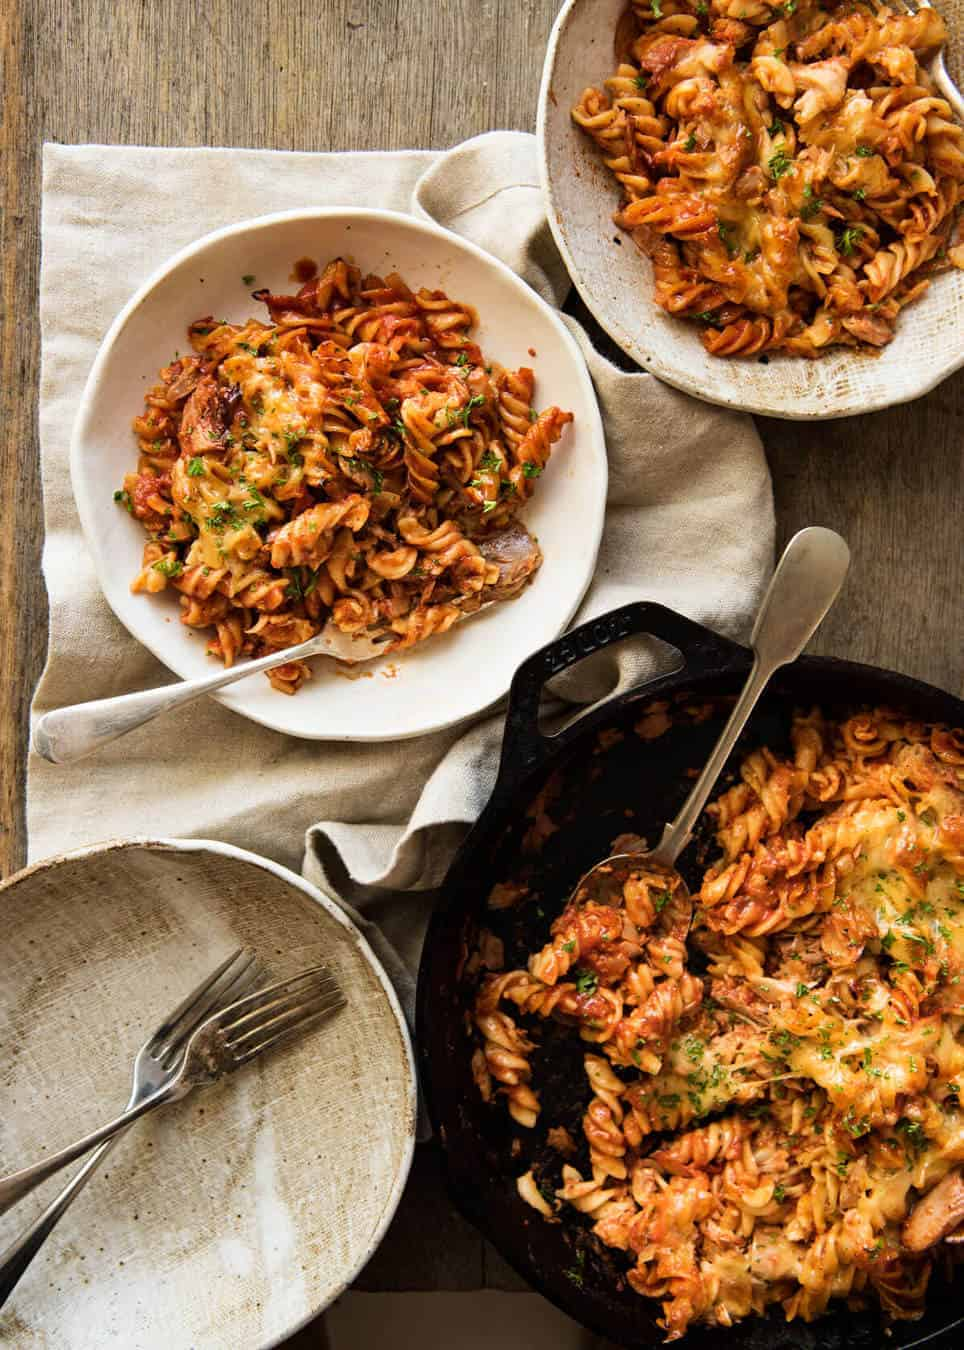 Everybody should know how to make a truly delicious Tuna Pasta Bake, for all those times when your cupboards are bare! recipetineats.com